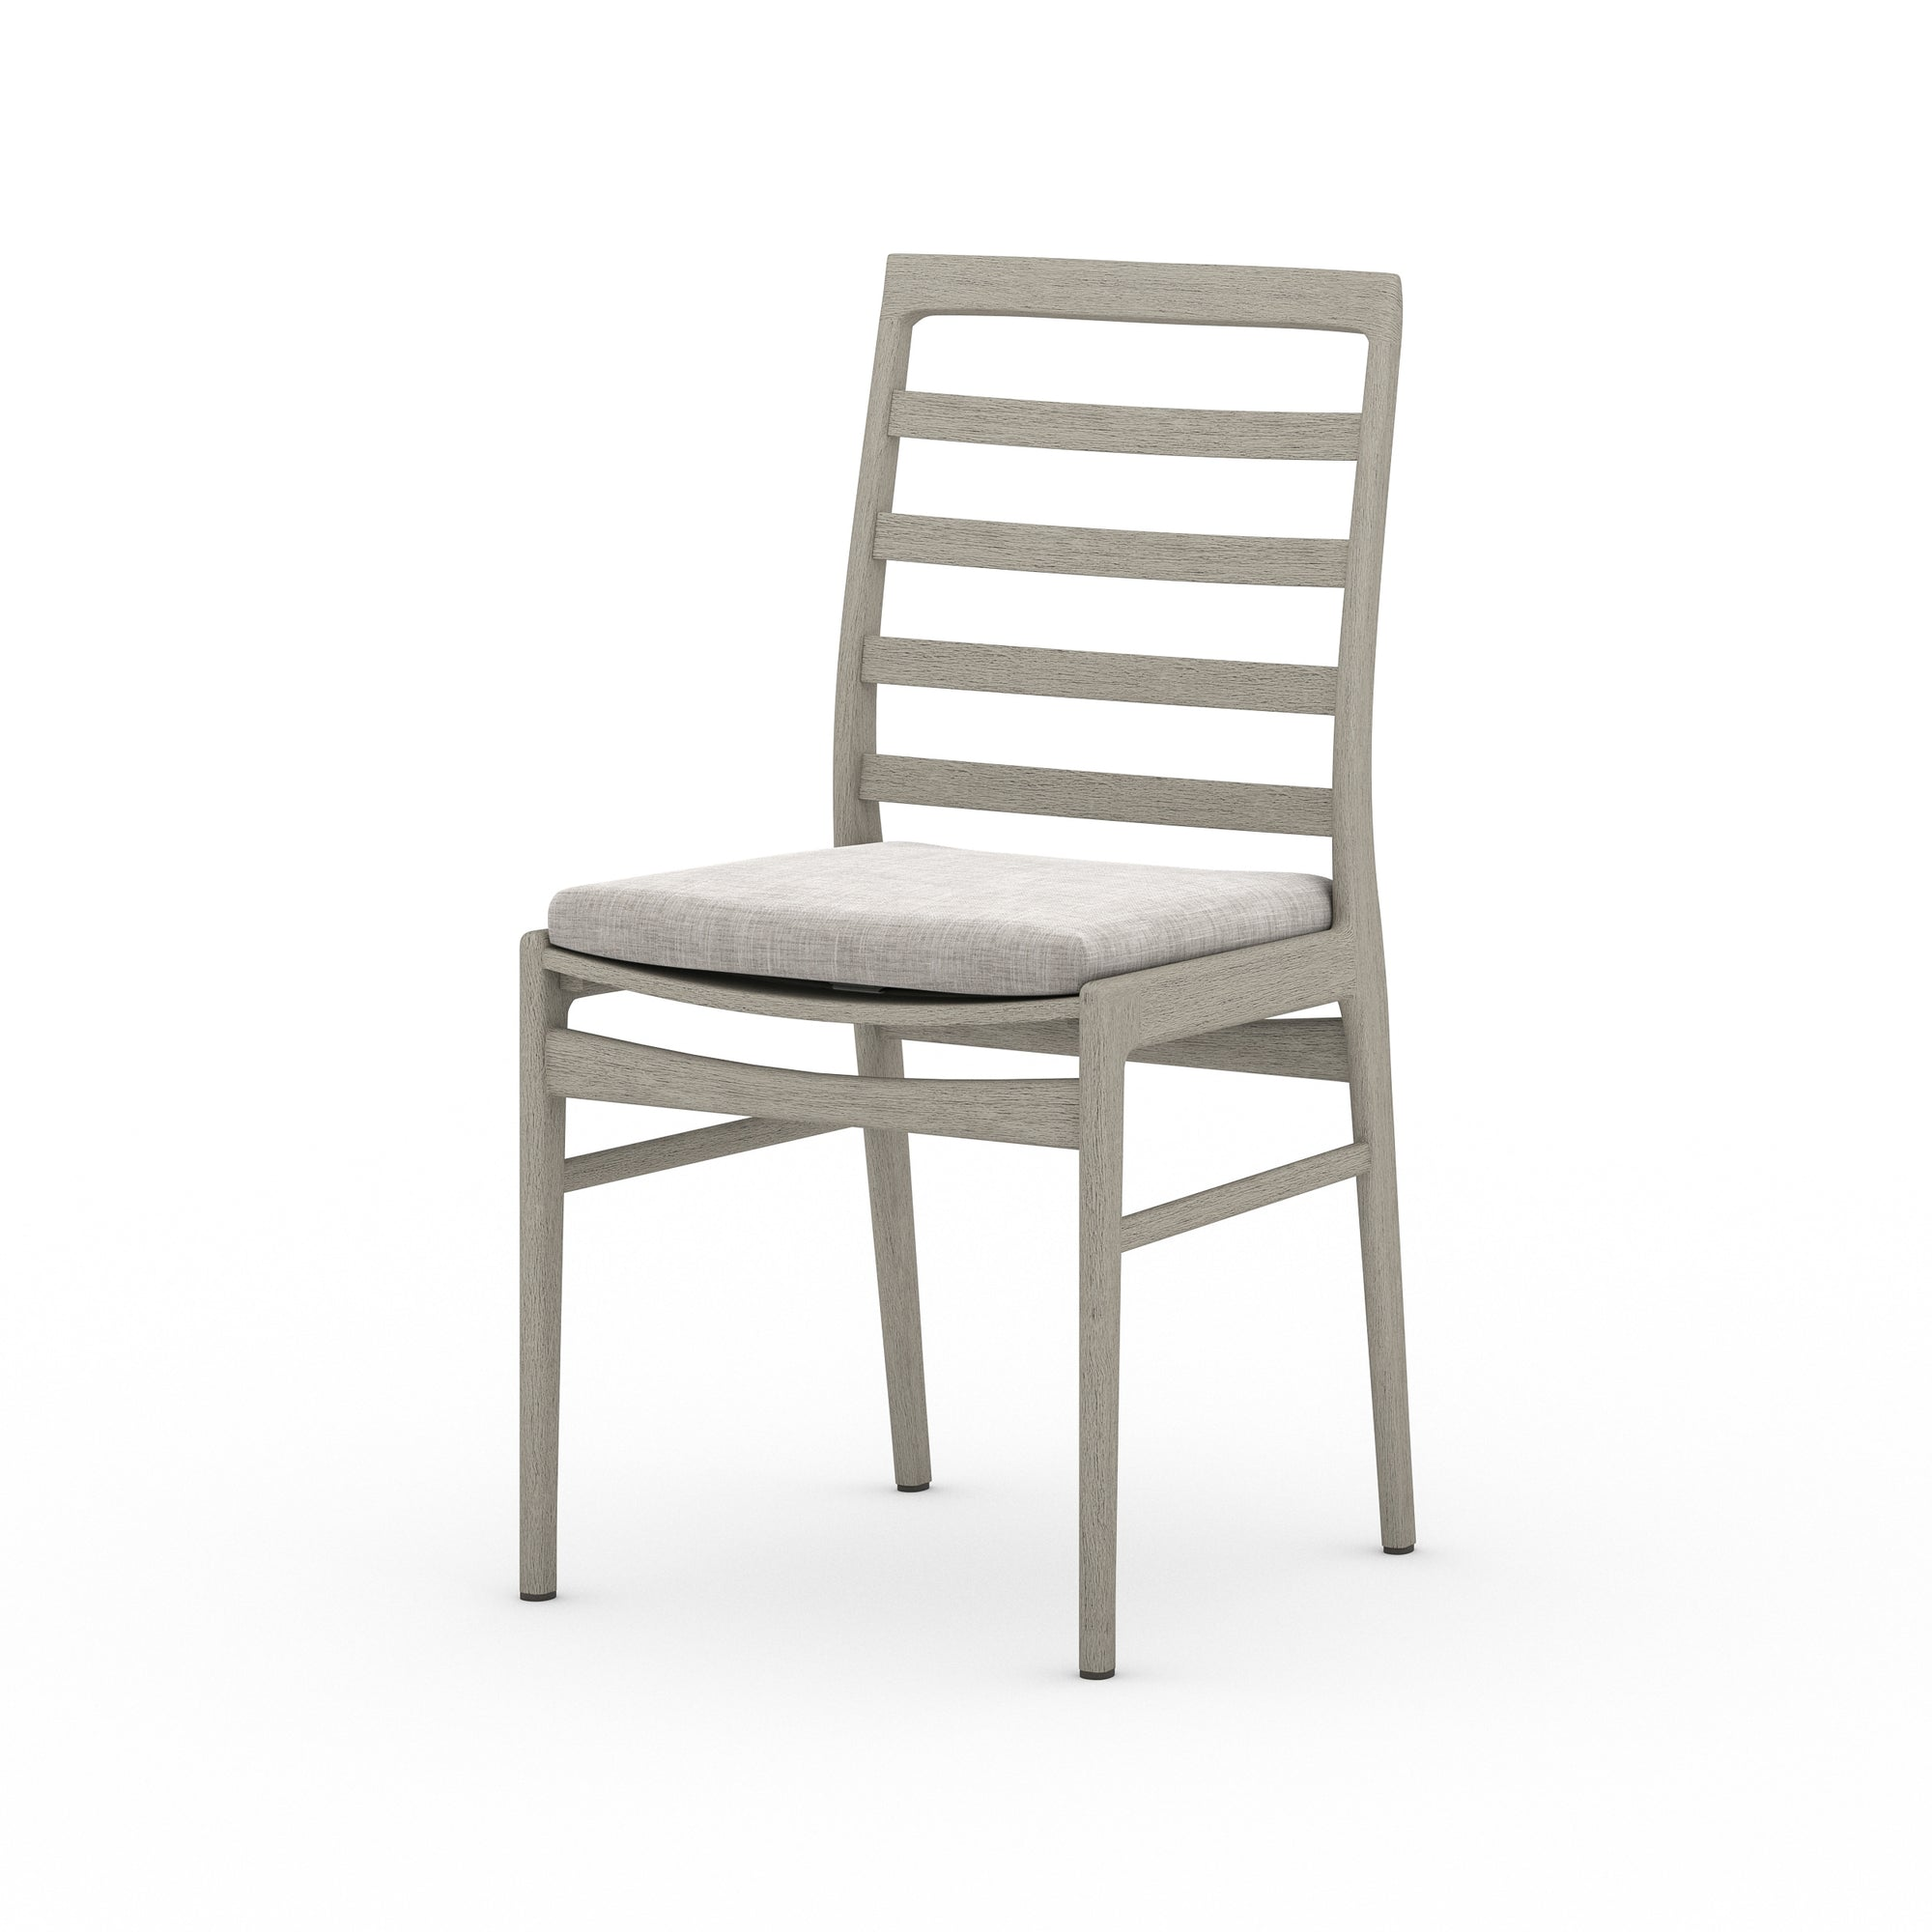 Linnet Outdoor Dining Chair - Grey/Stone G